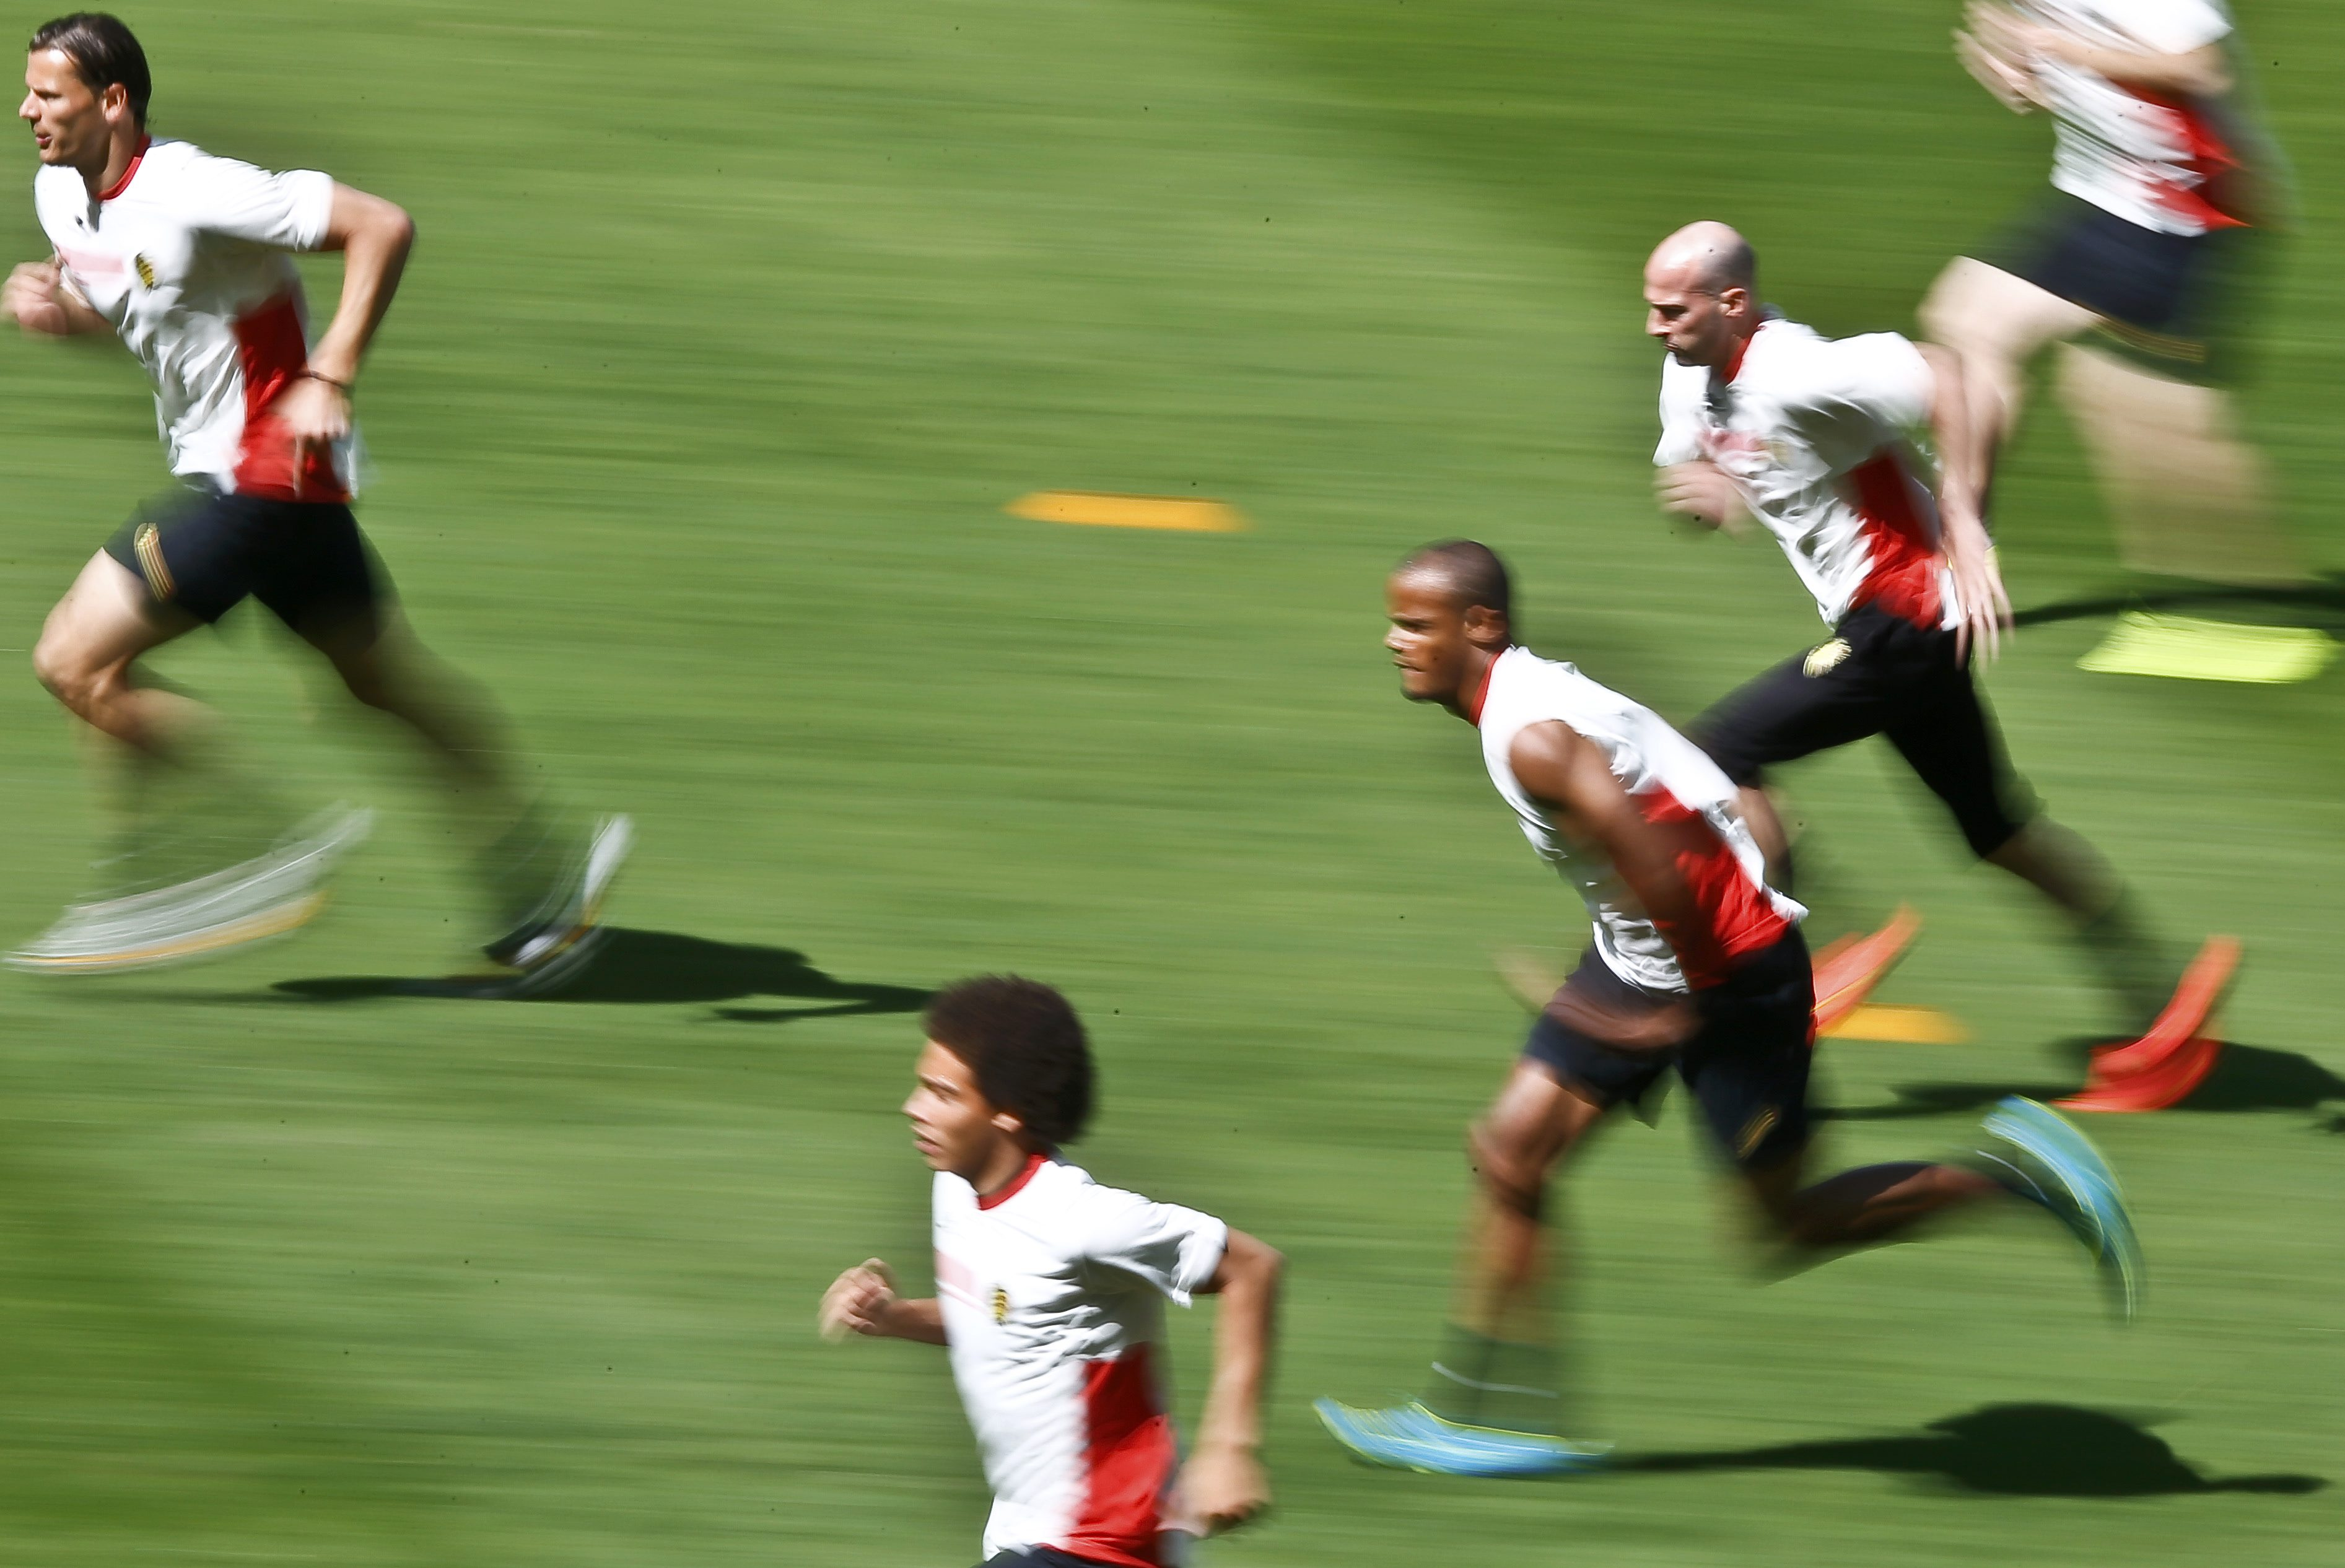 (L-R) Belgium's Daniel van Buyten, Axel Witsel, Vincent Kompany and Laurent Ciman run during a training session in Belo Horizonte June 16, 2014. Belgium will face Algeria in their first 2014 World Cup Group H soccer match on June 17. REUTERS/Dominic Ebenb